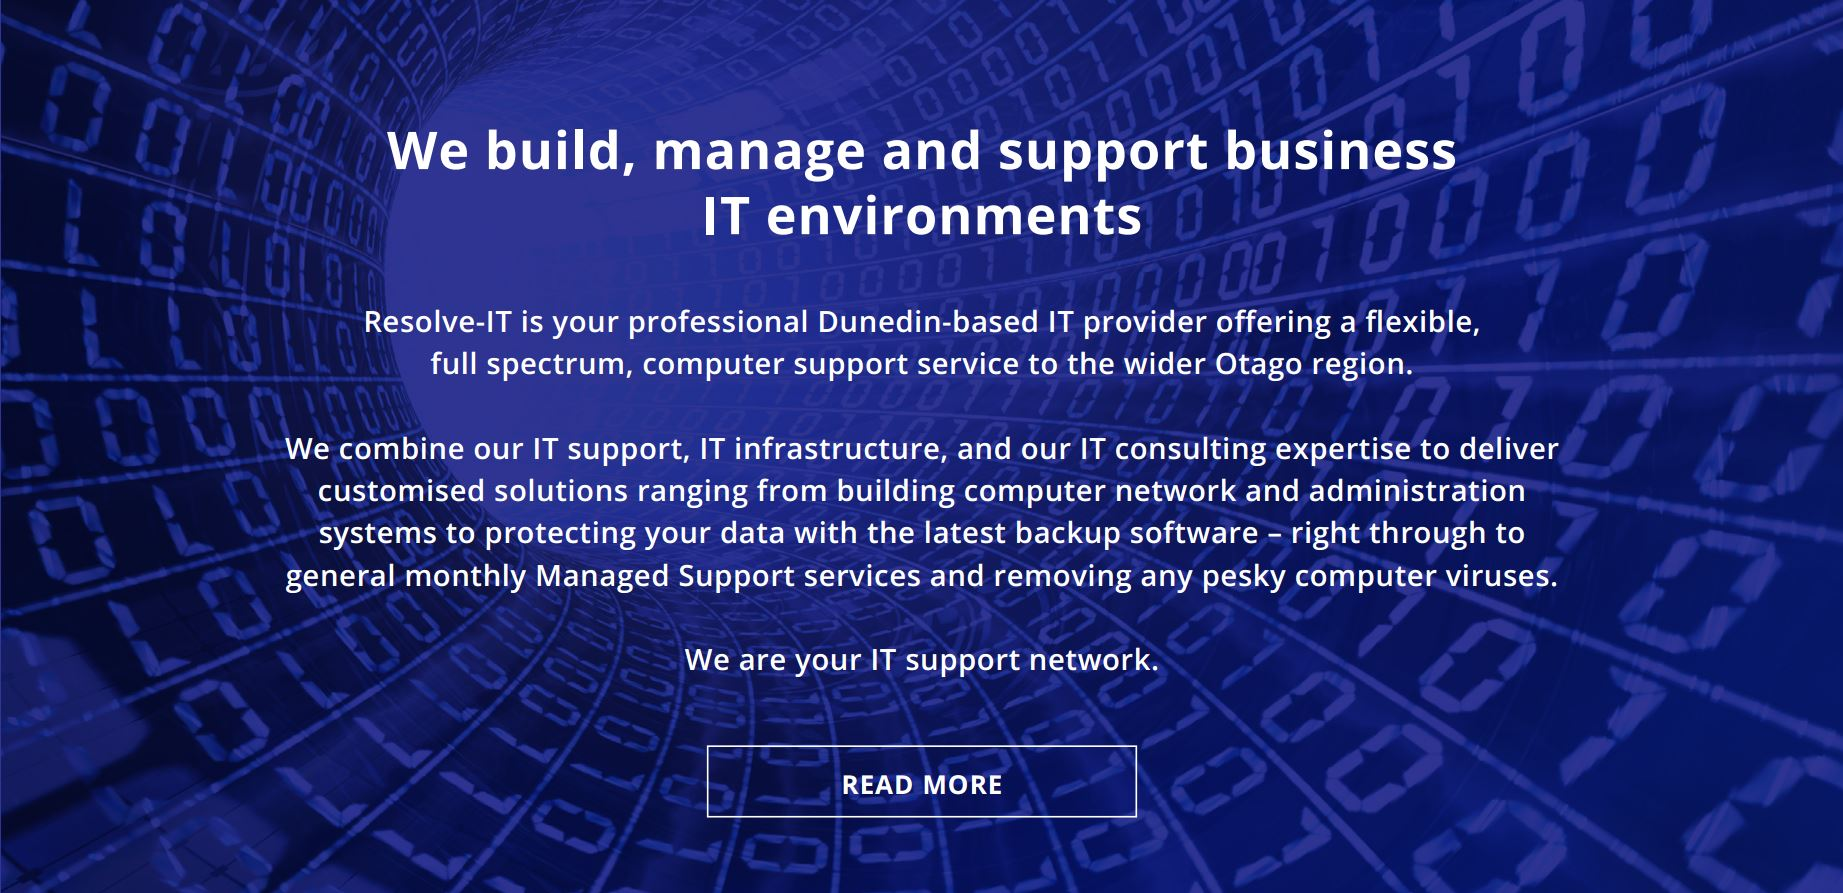 Resolve-IT -We build, manage and support business